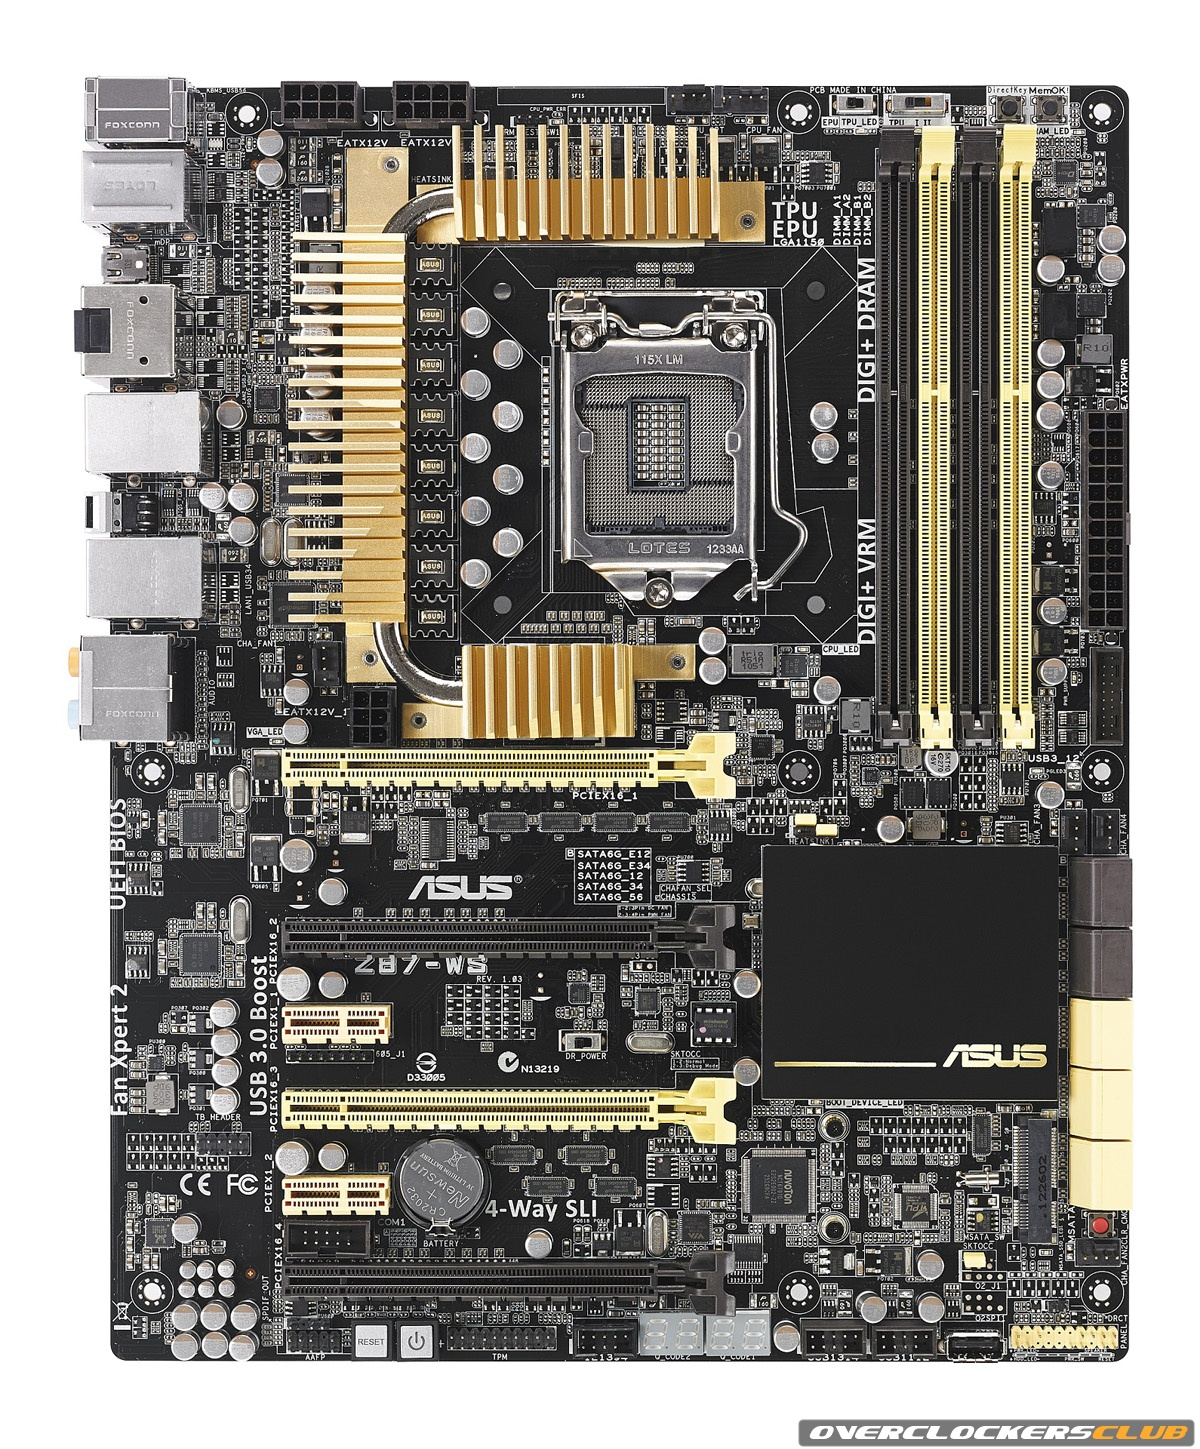 ASUS Shows Off Its New Color Scheme for the Intel Z87 Motherboards